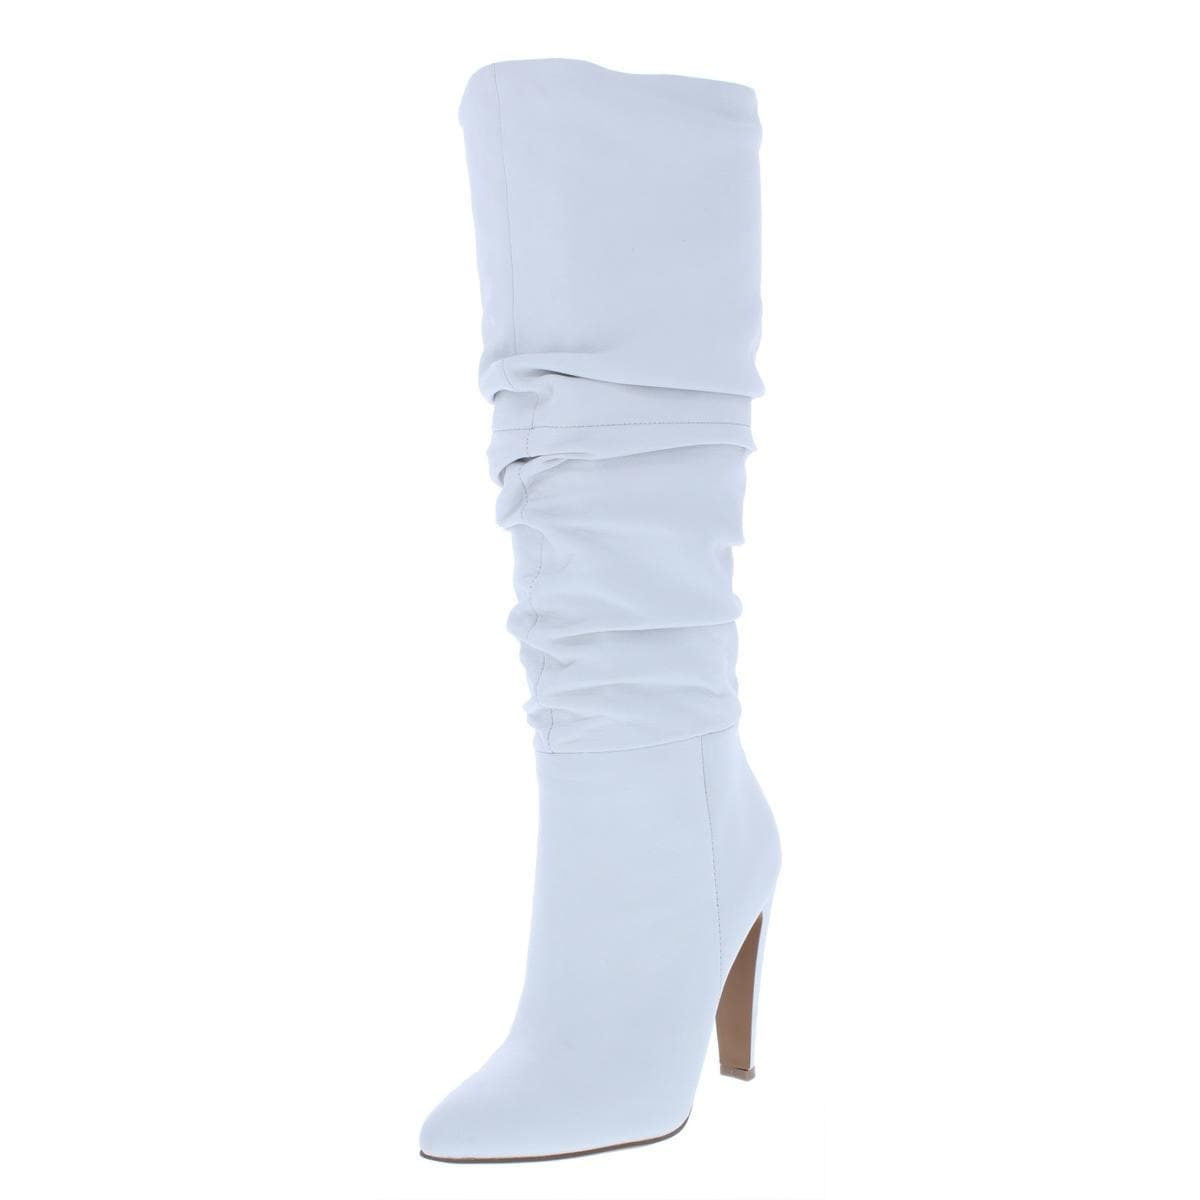 2ed10915c48 Shop Steve Madden Womens Carrie Dress Boots Slouchy Pointed Toe ...